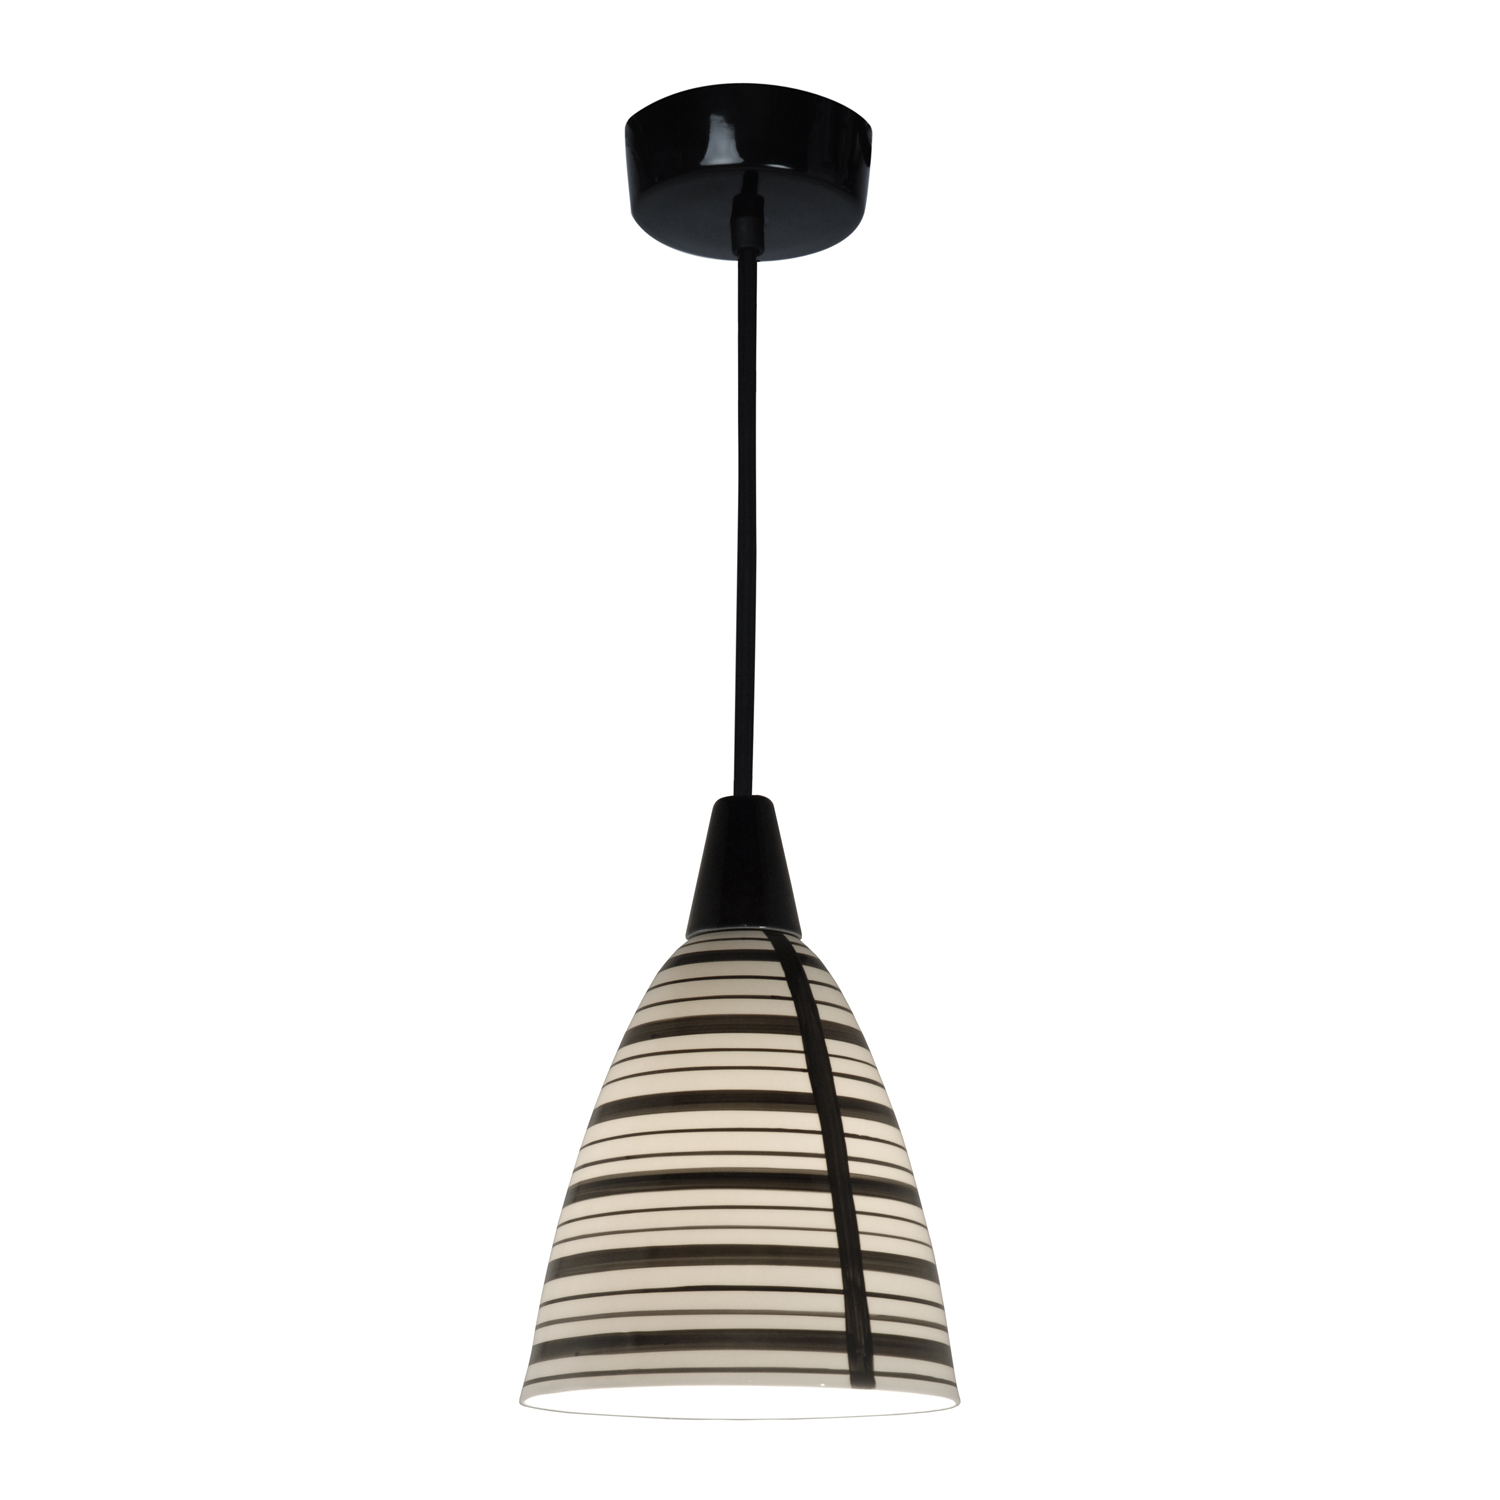 Circle Line Pendant with hand painted black lines